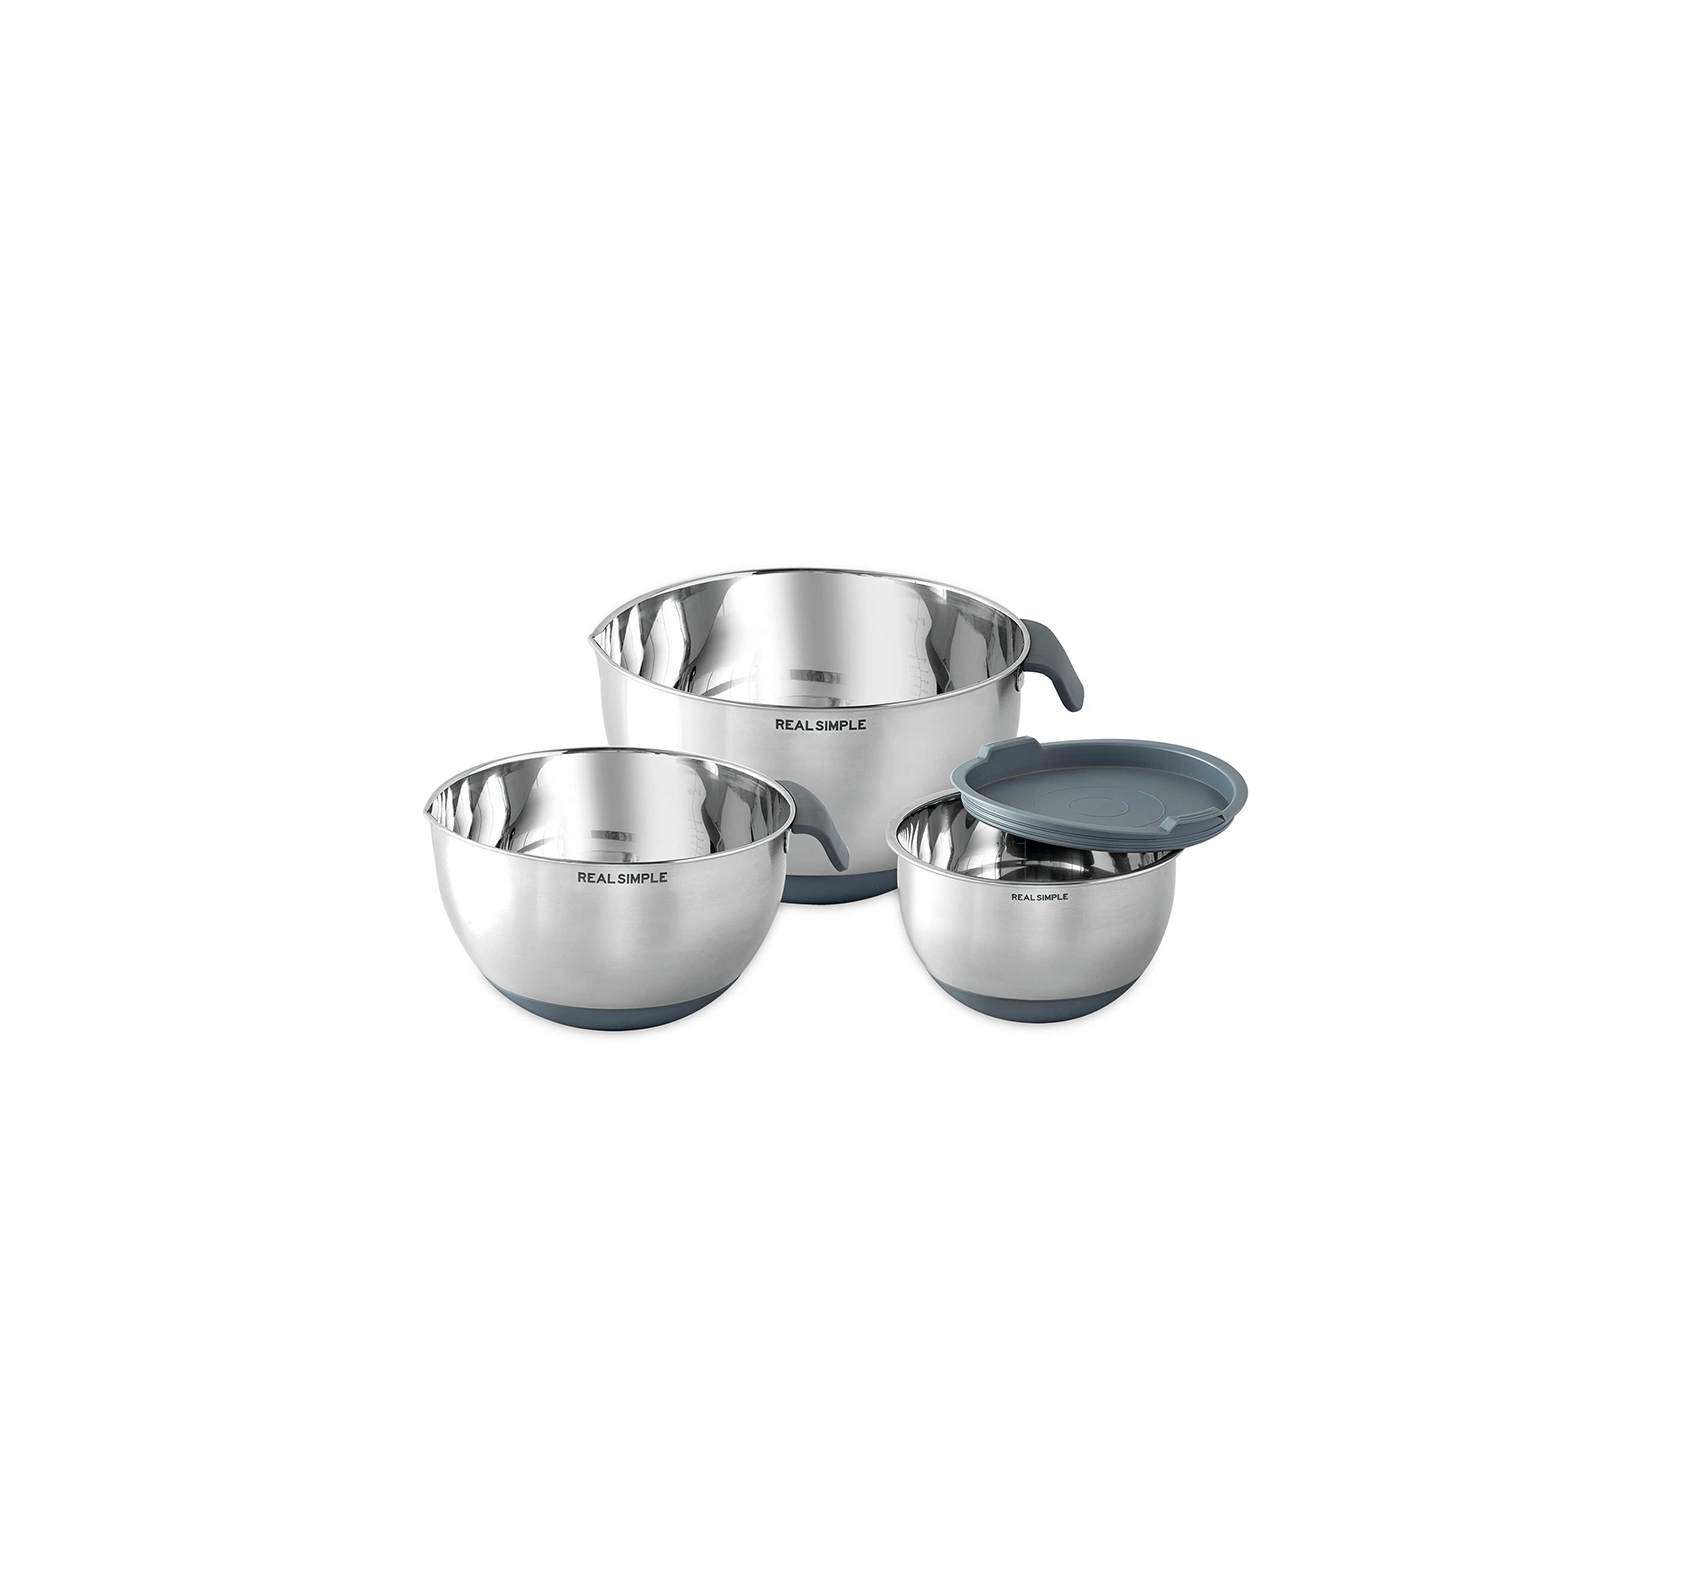 Real Simple Stainless Steel Mixing Bowl Set